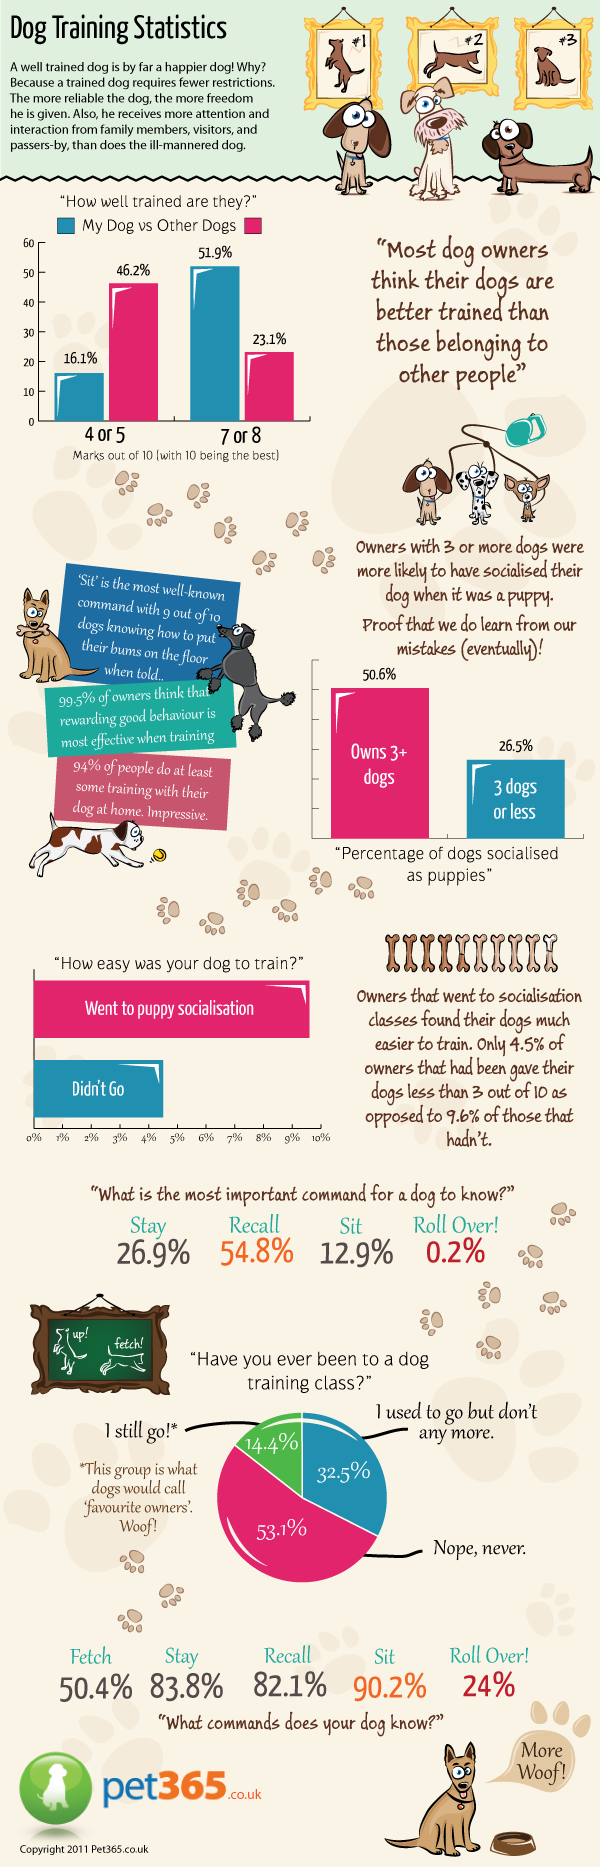 Dog Training Statistics